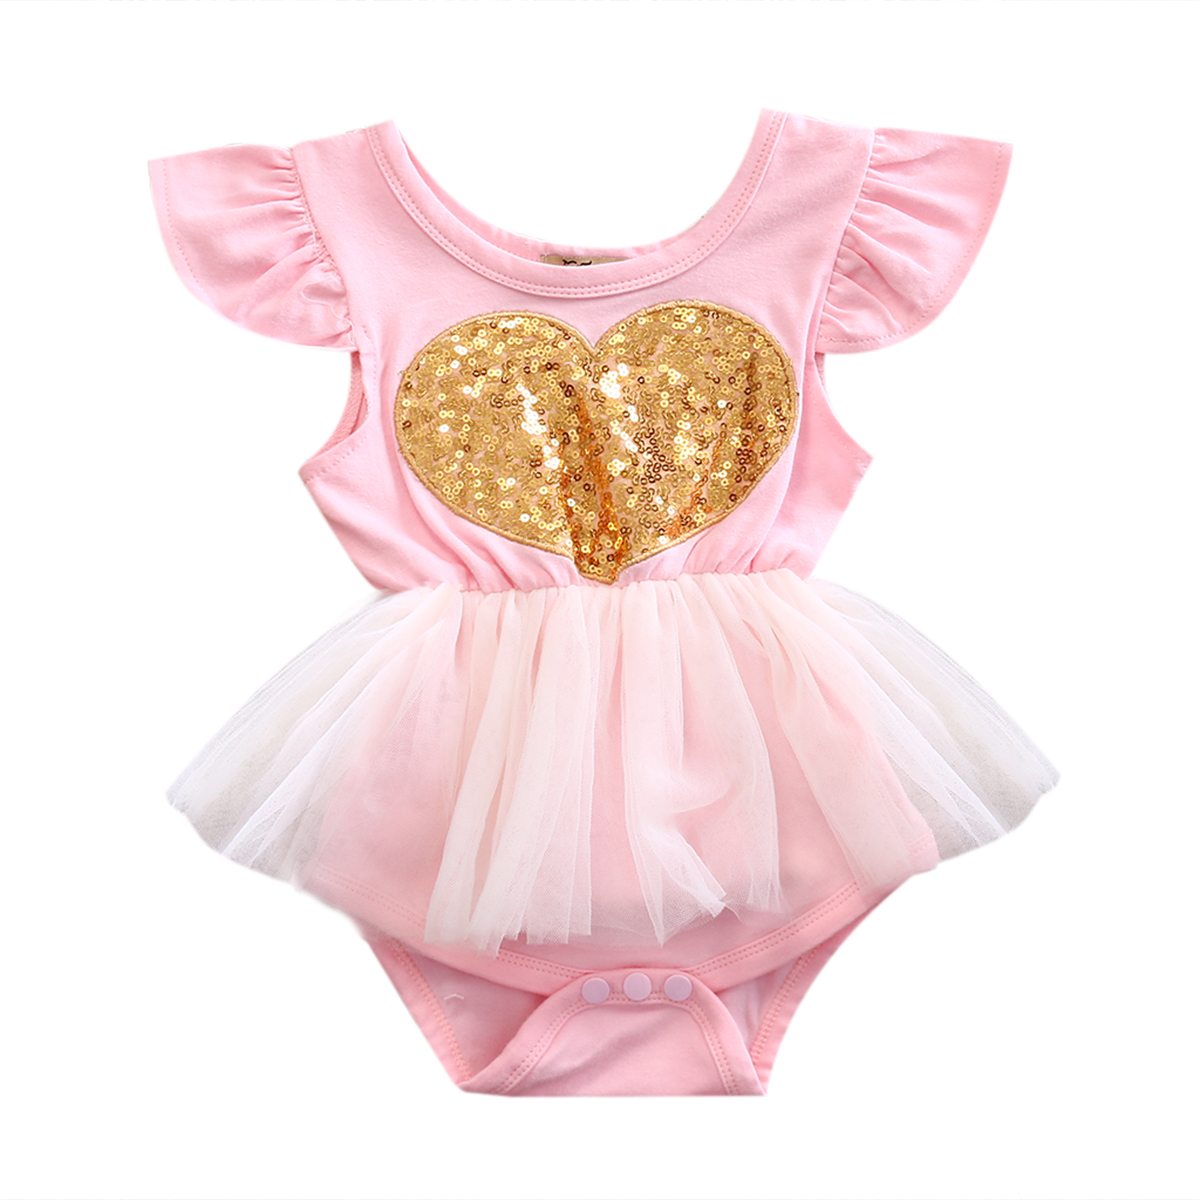 0 24M Babies Girl Heart Sequins Tulle Bodysuits Cute Newborn Infant Baby Girls Bodysuit Playsuit Outfits